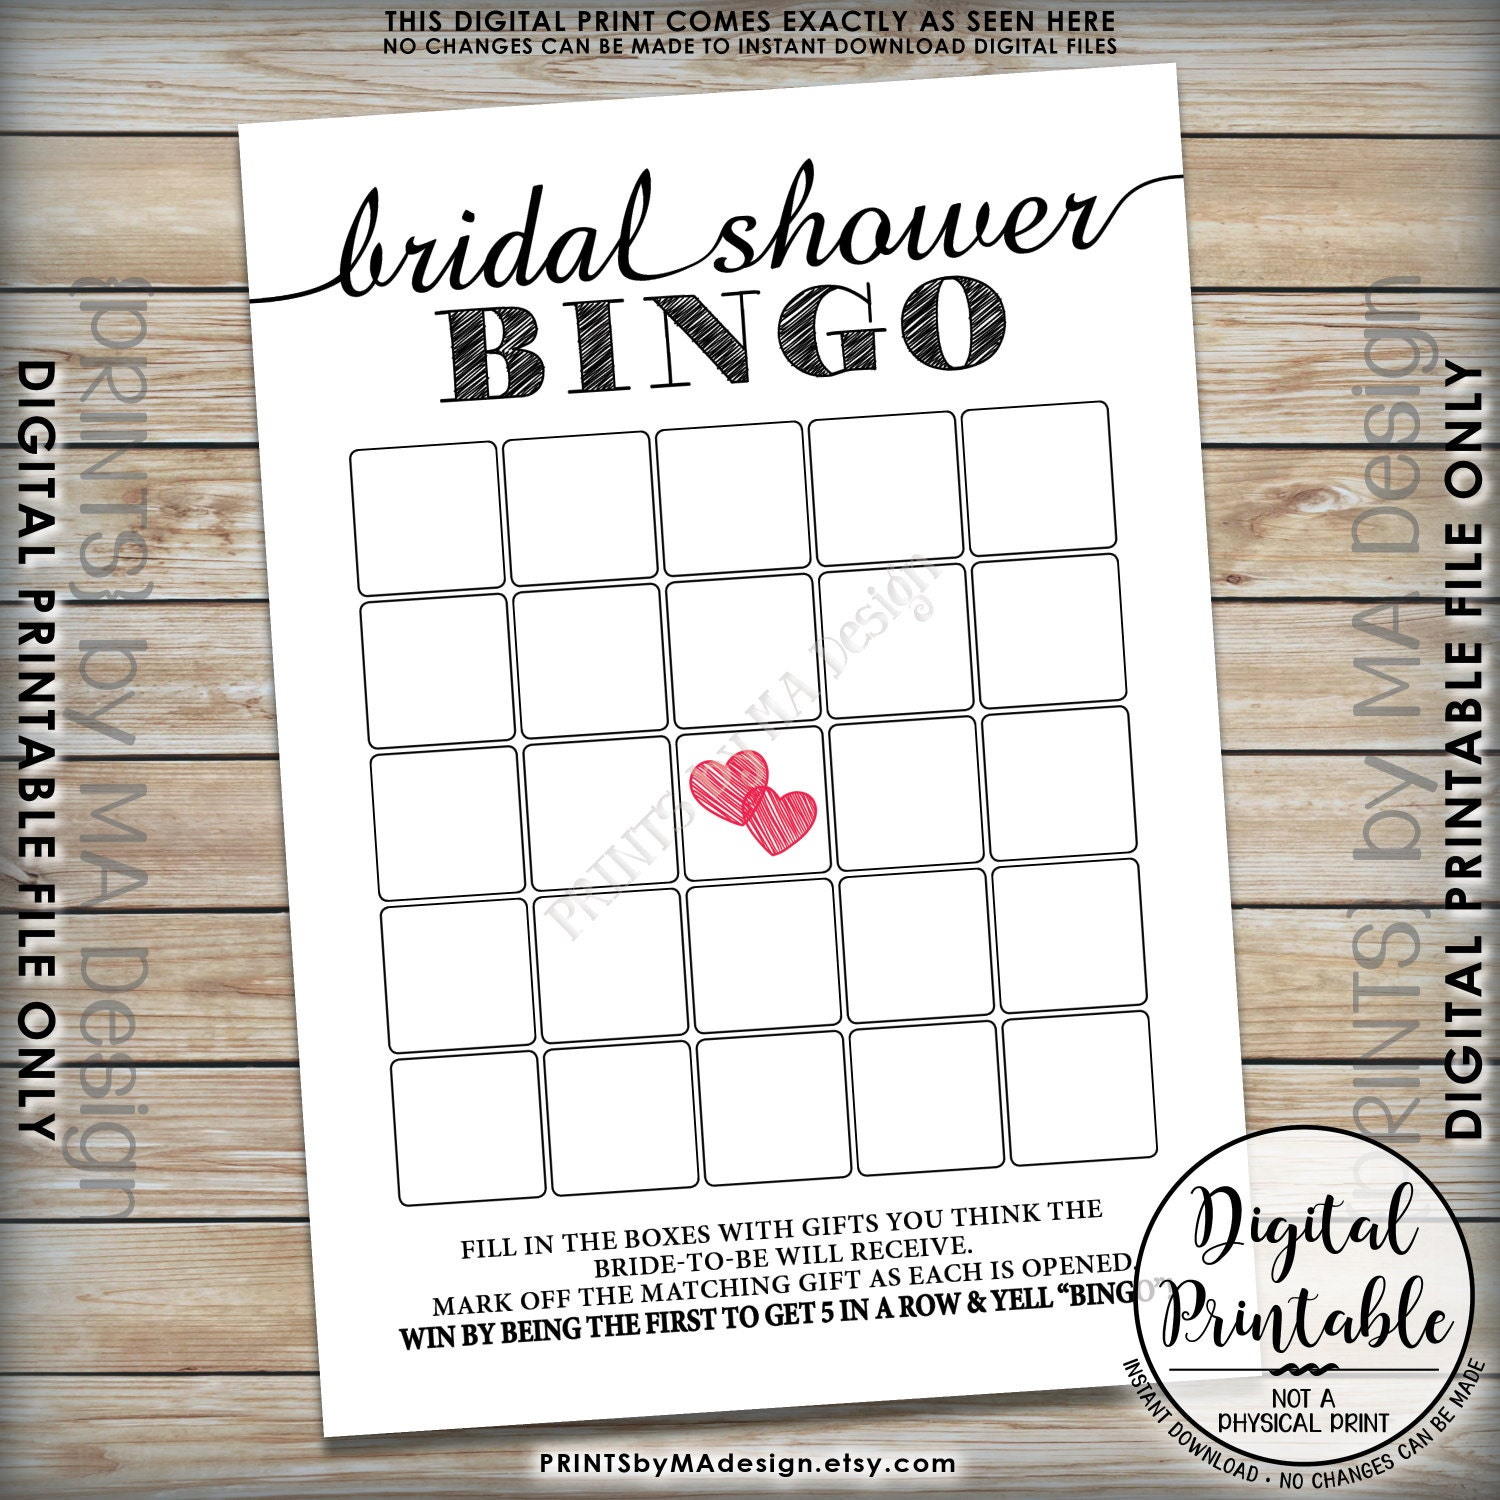 Bridal Shower Bingo Cards Printable Blank